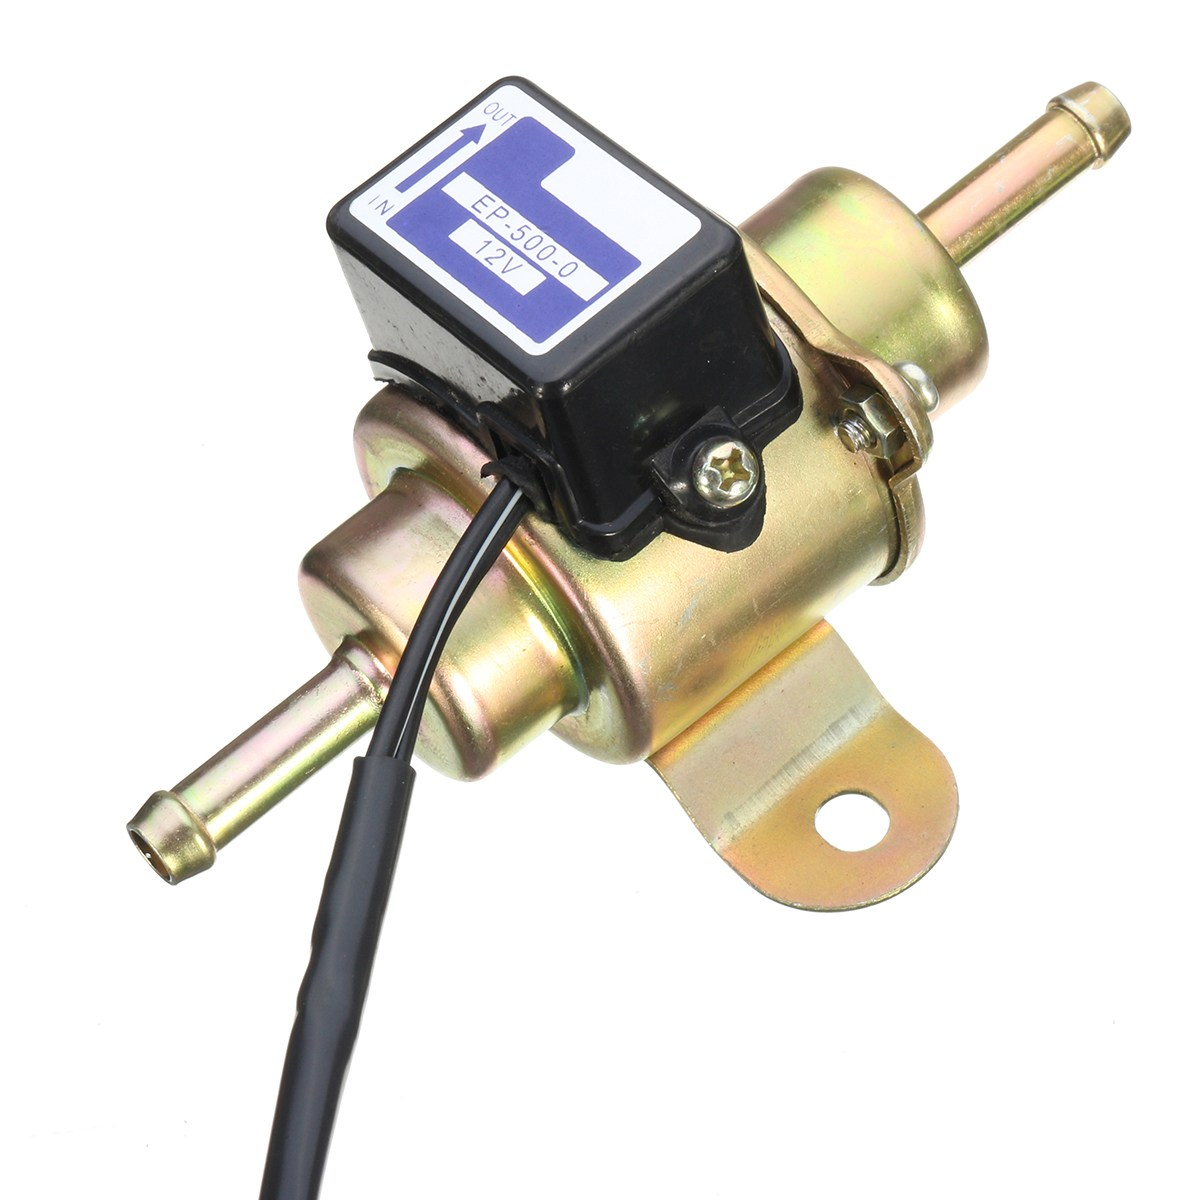 12V Universal Low Pressure Gas for Diesel Electric Fuel Pump 1/4 Tubing For Motorcycle ATV EP5000 title=